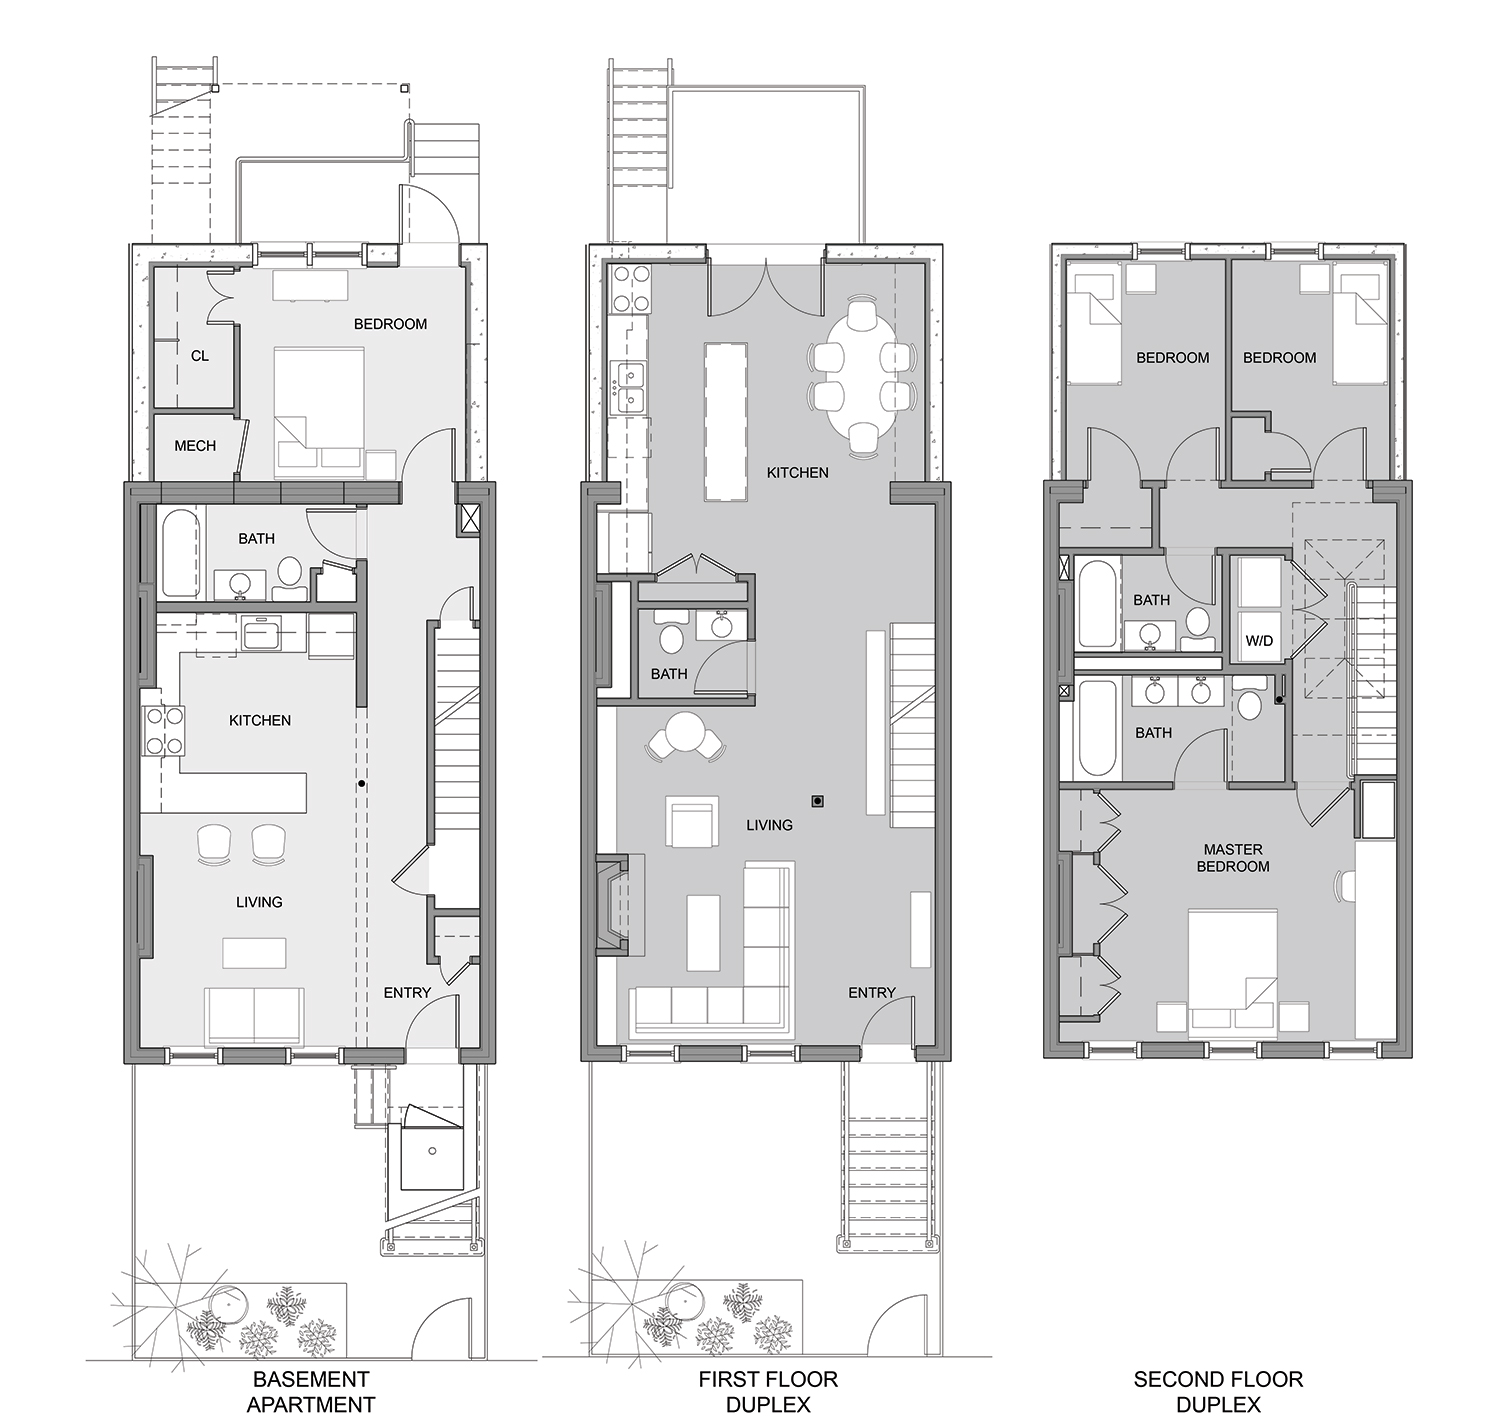 Urban pioneering urban pioneering architecture dpc Home layout planner